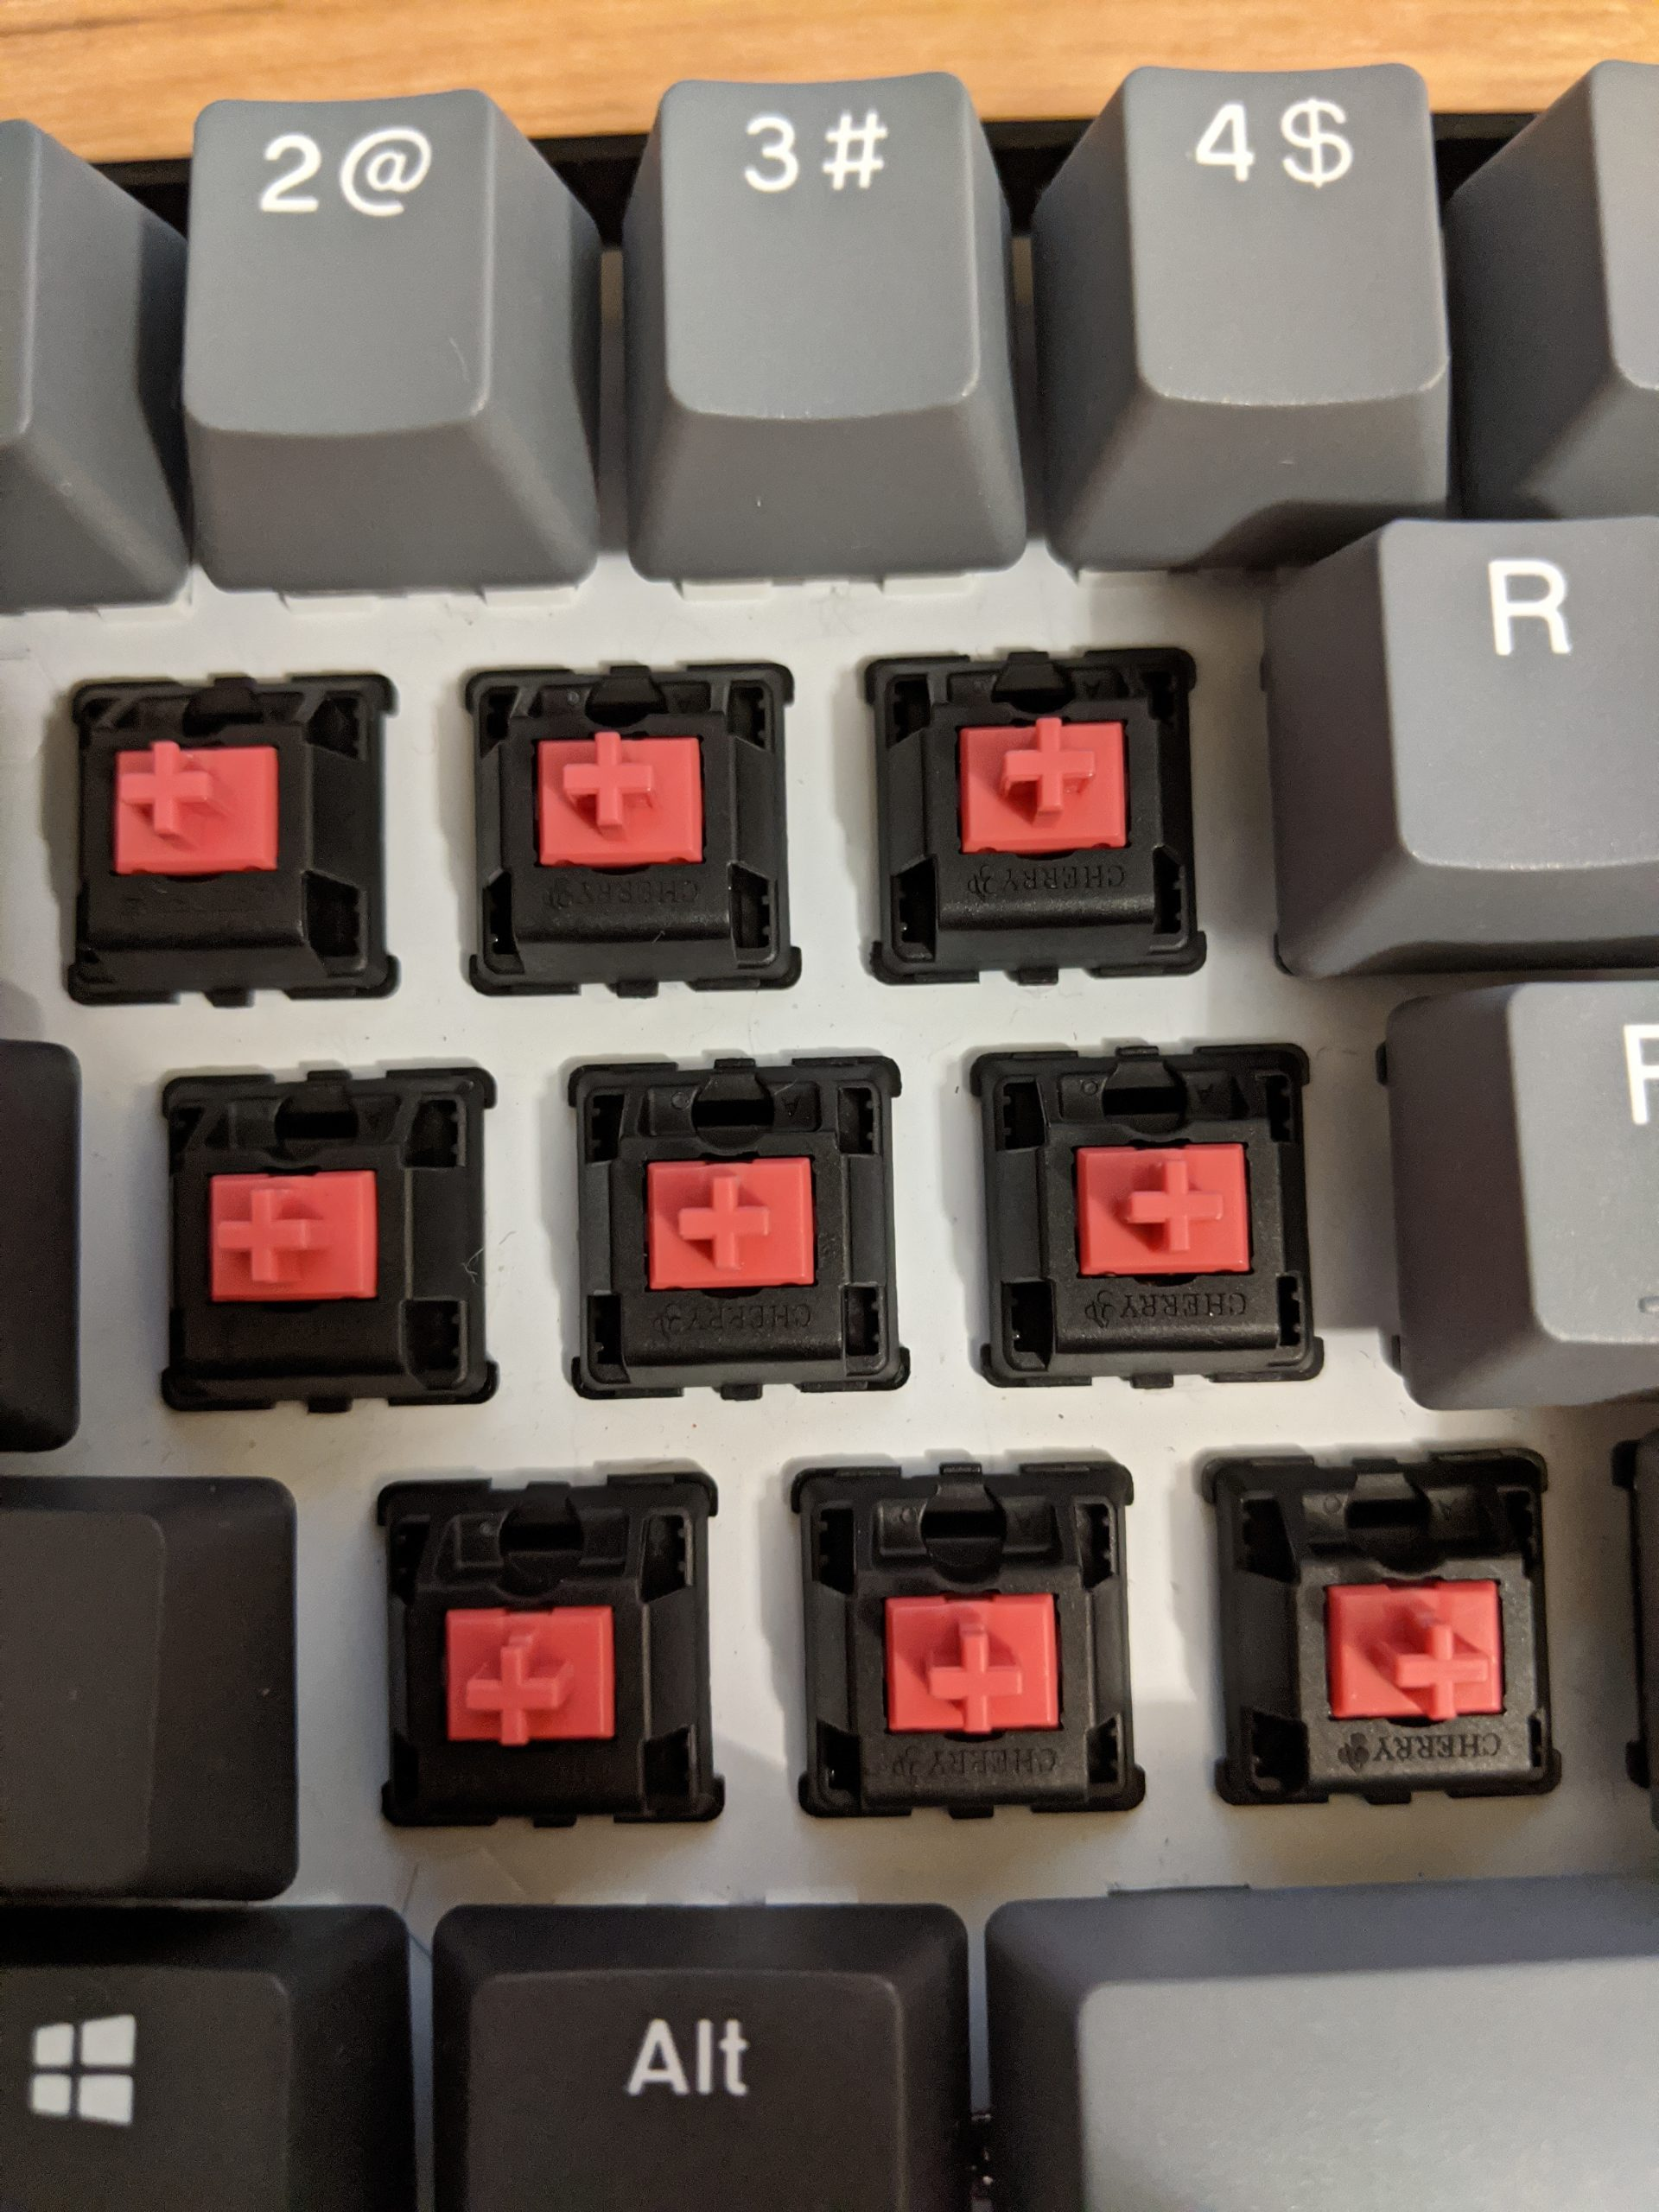 Cherry MX Silent Red (Pink) switches.